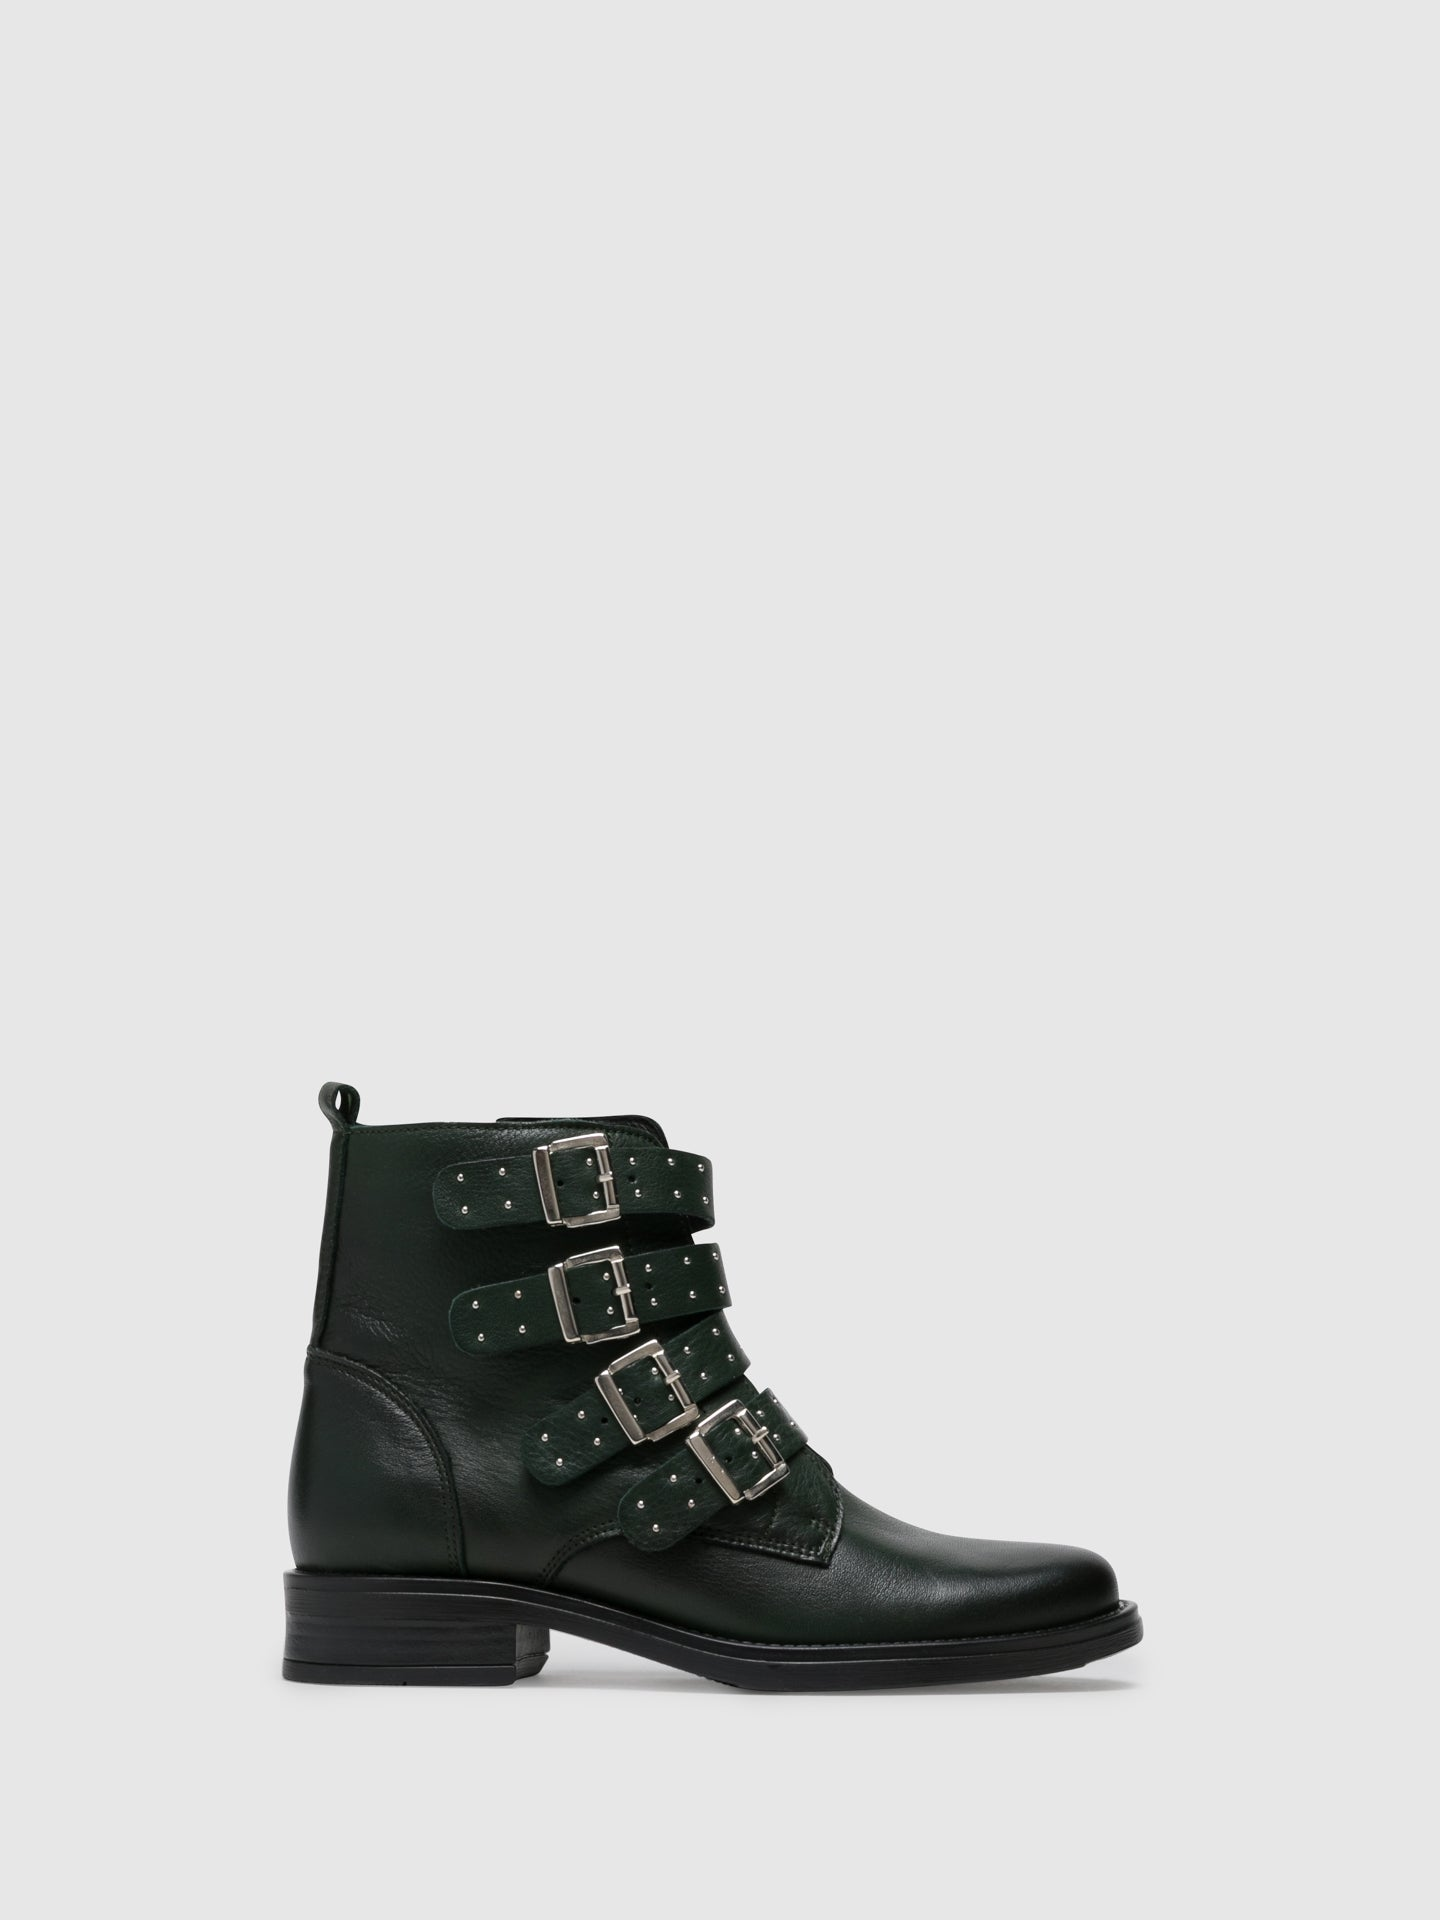 Foreva Green Zip up Boots